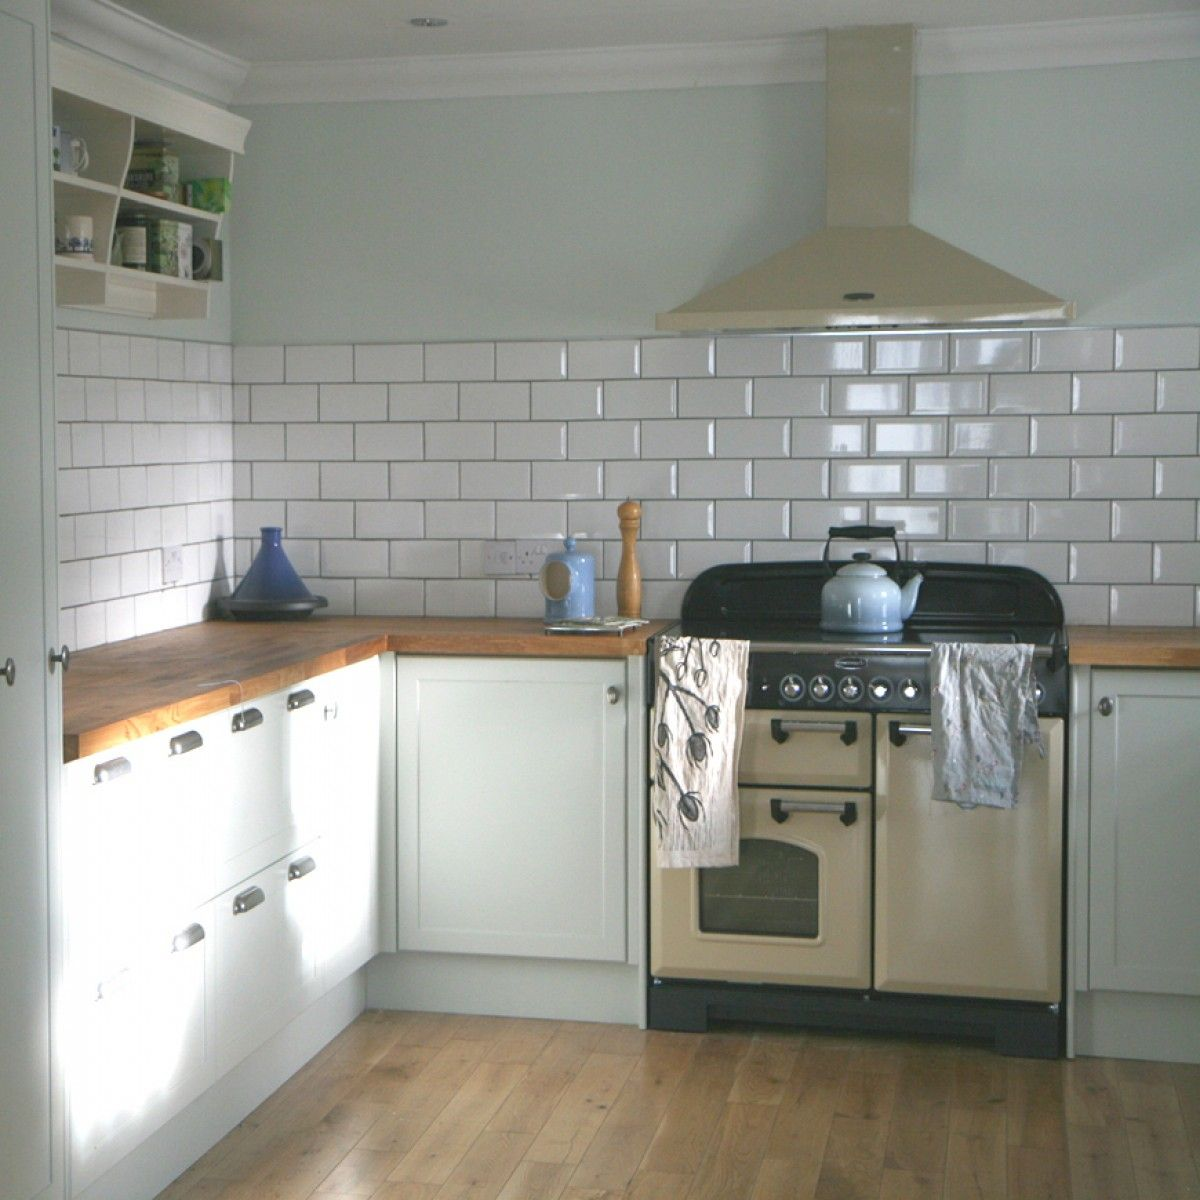 Picture Tiles For Kitchen White Subway Tile In Modern Kitchen Google Search